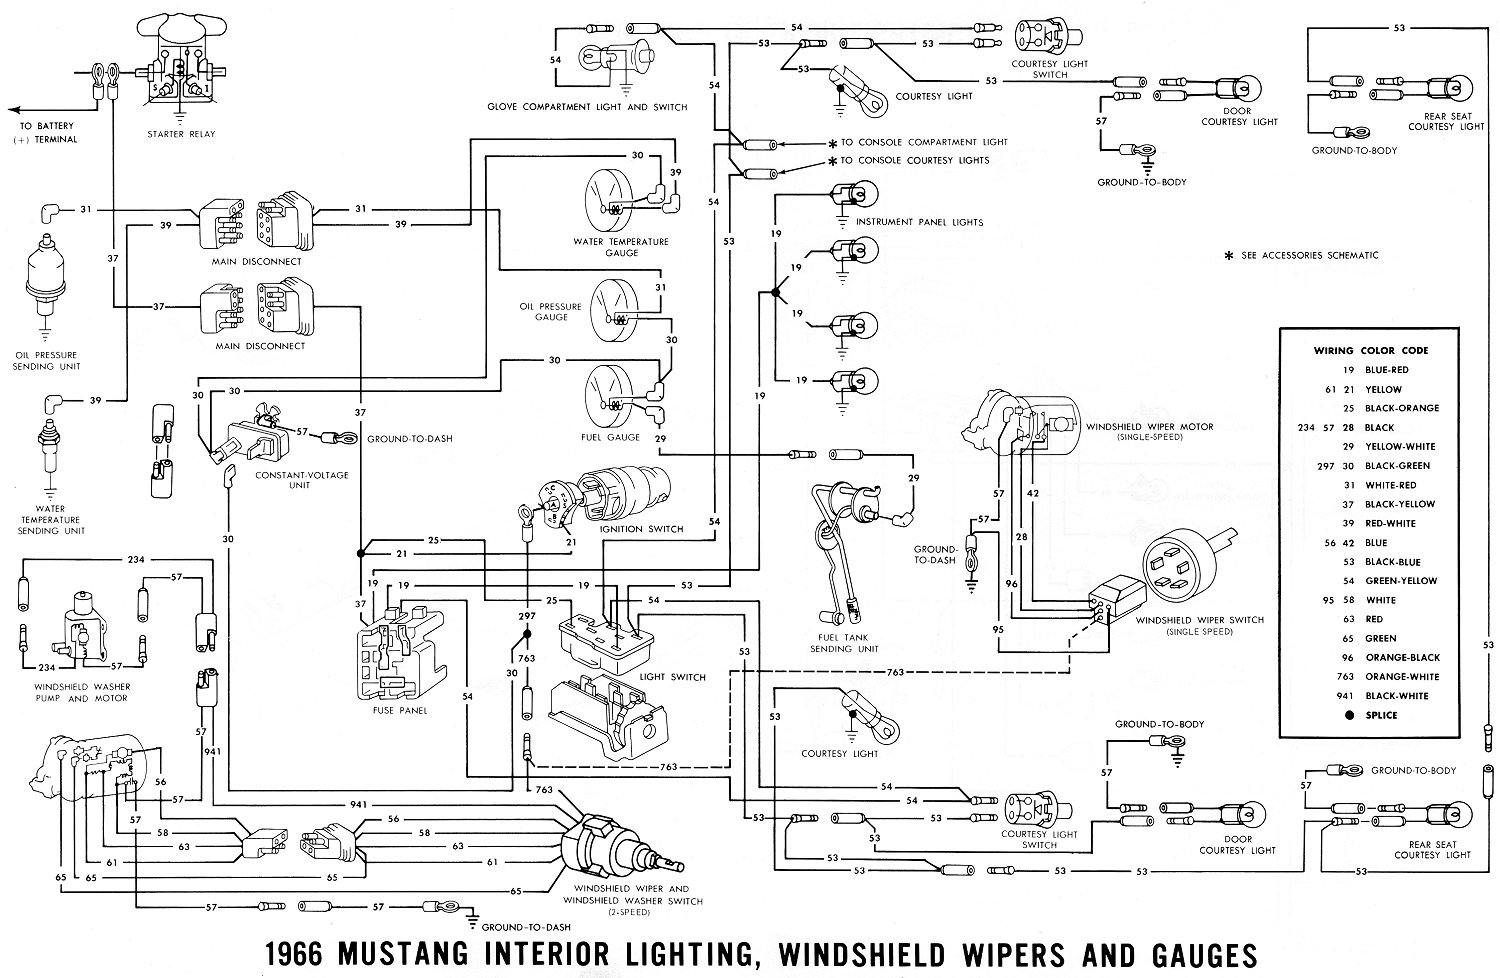 1966 mustang wiring diagrams average joe restoration rh averagejoerestoration com 66 mustang wiring harness install 1966 mustang wiring harness kit